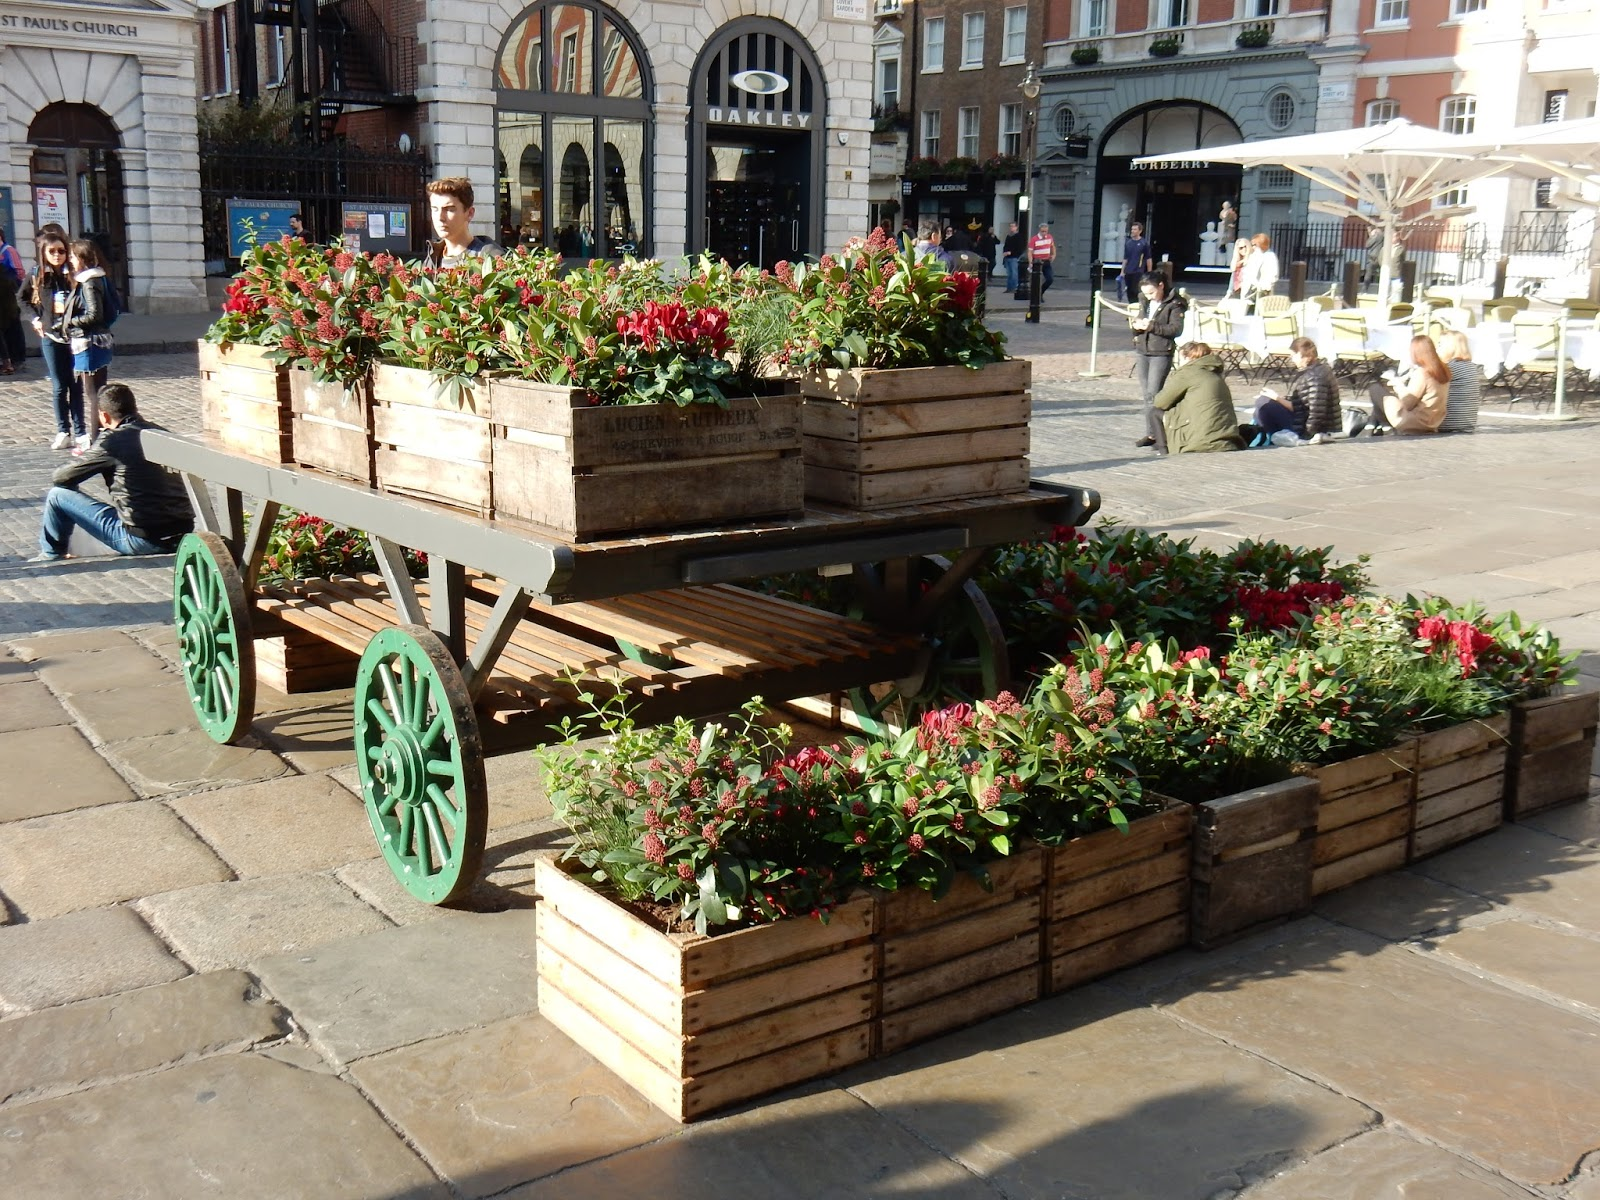 Covent garden l un de mes march s favoris londres blog d elisa n voyages photos - Le petit jardin covent garden metz ...